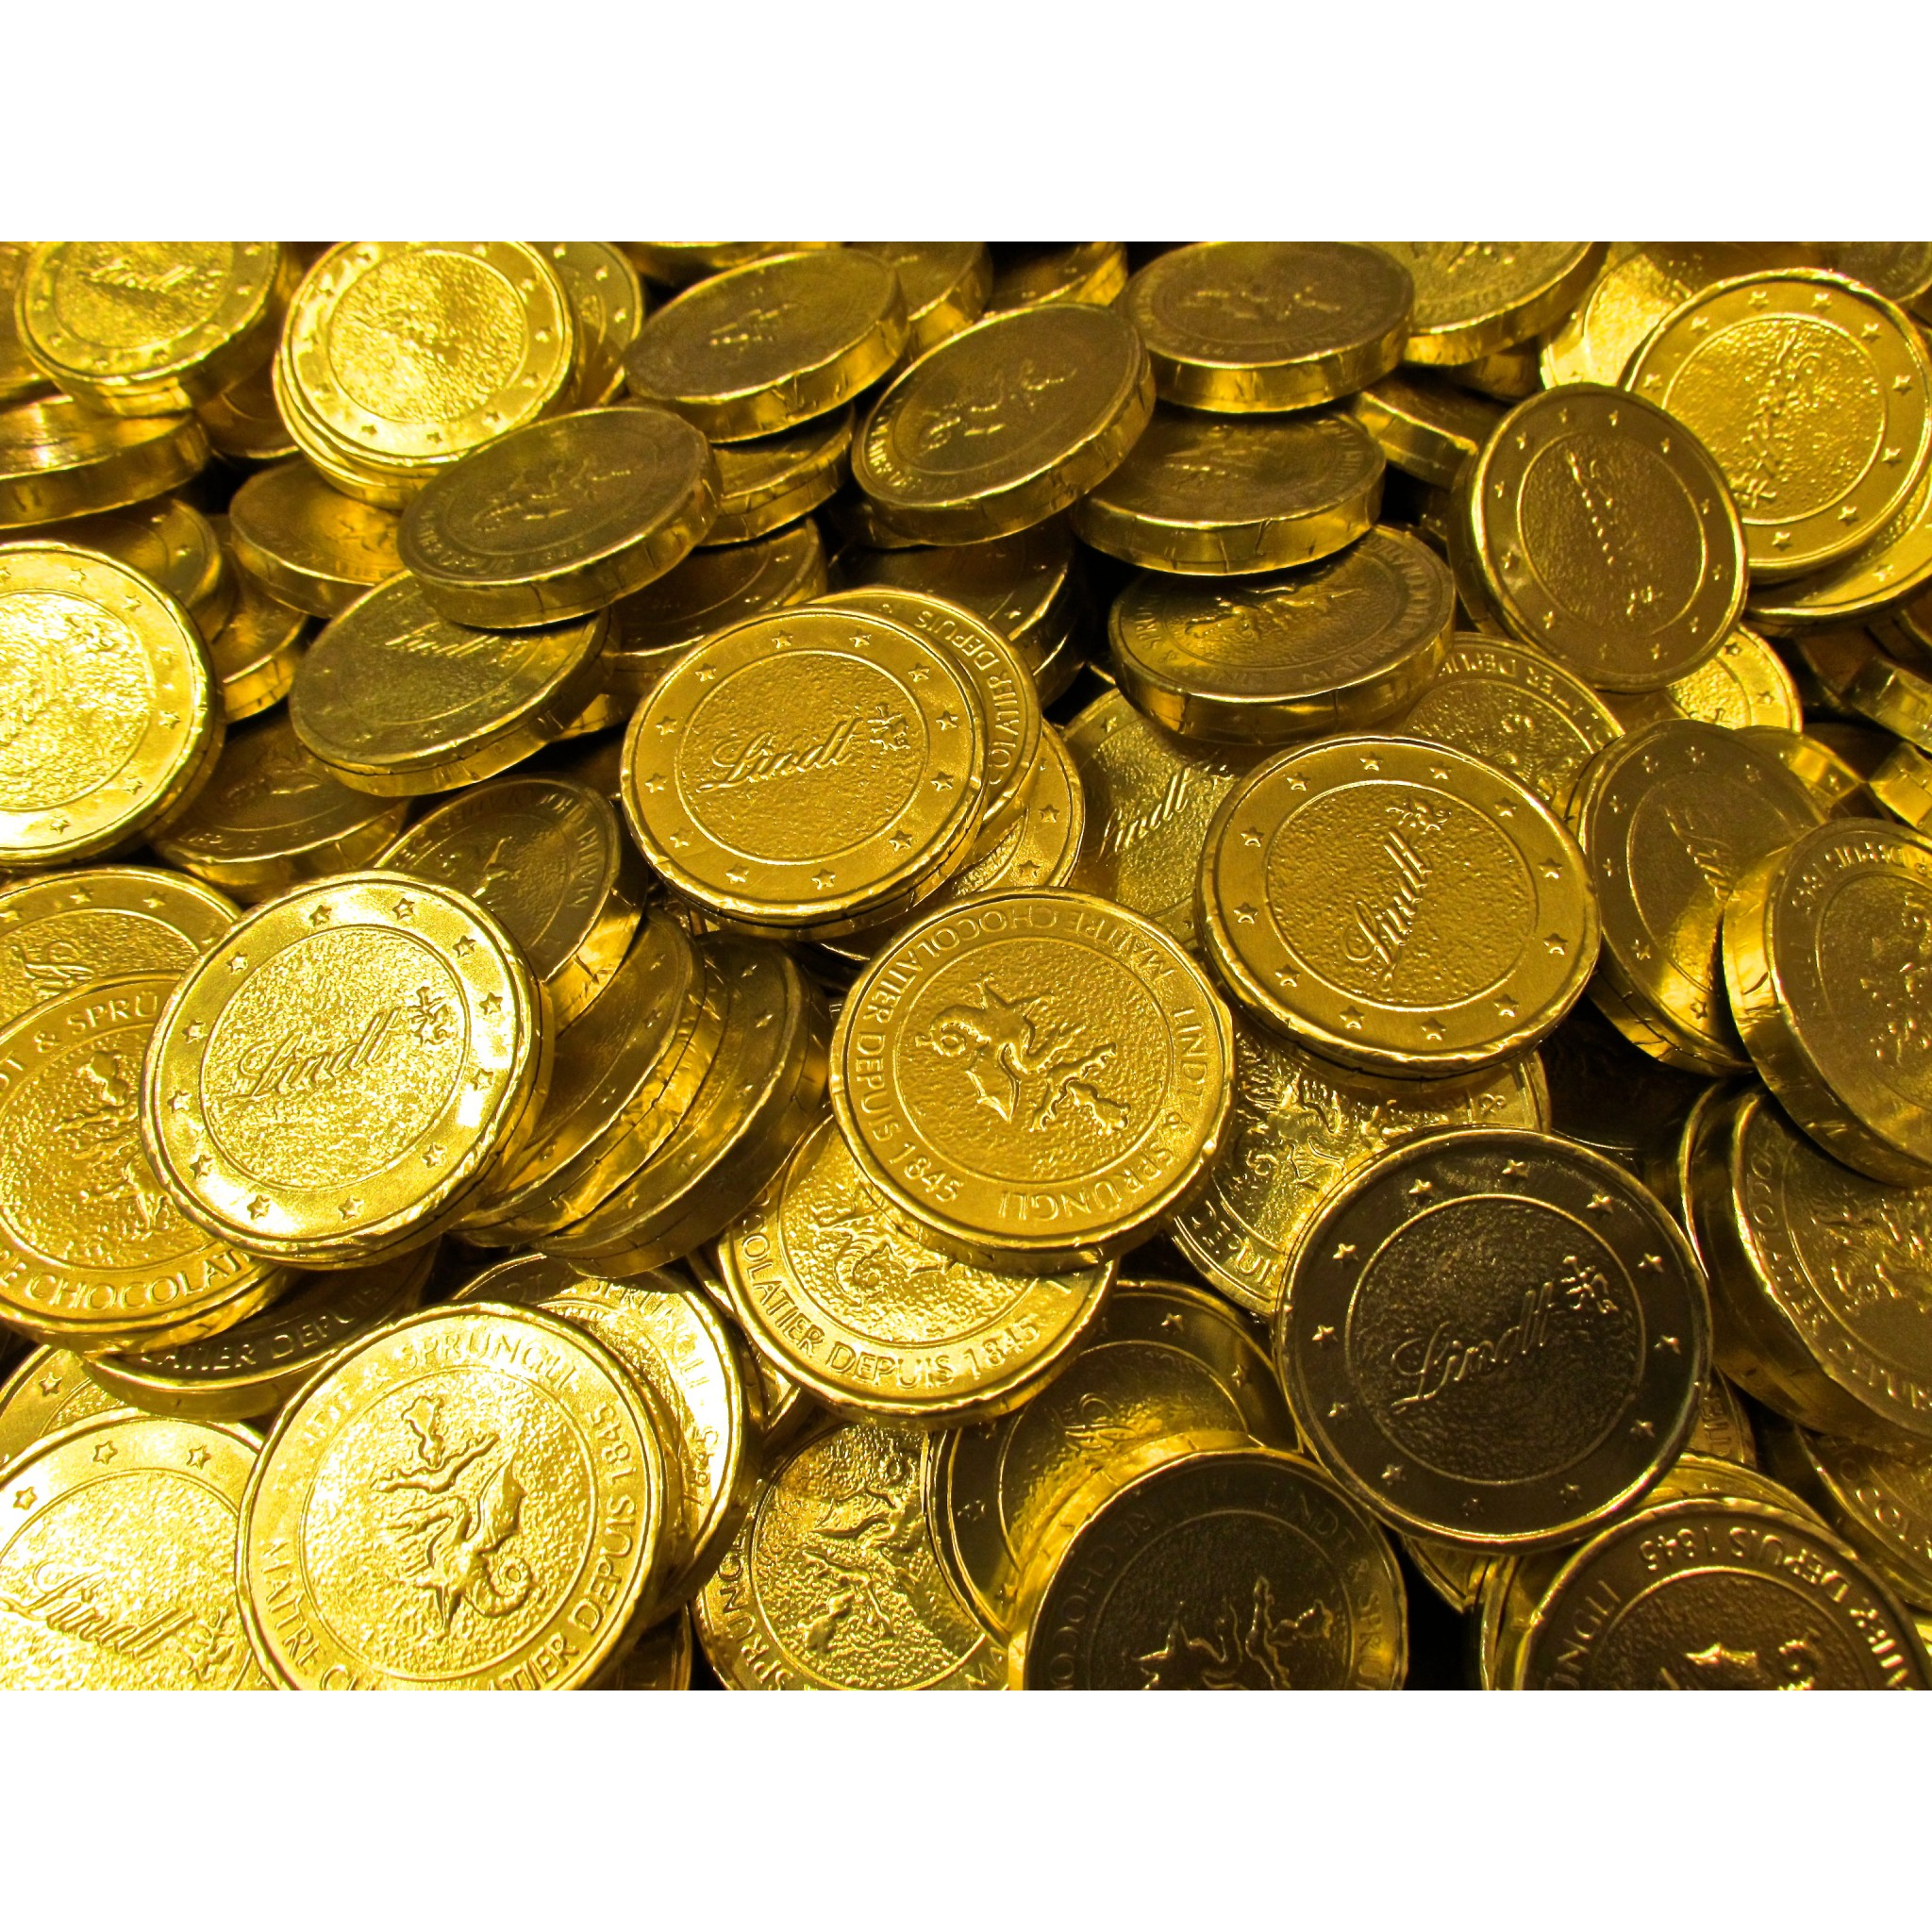 Sales Online And Buy Lindt Chocolates In The Shape Of Gold